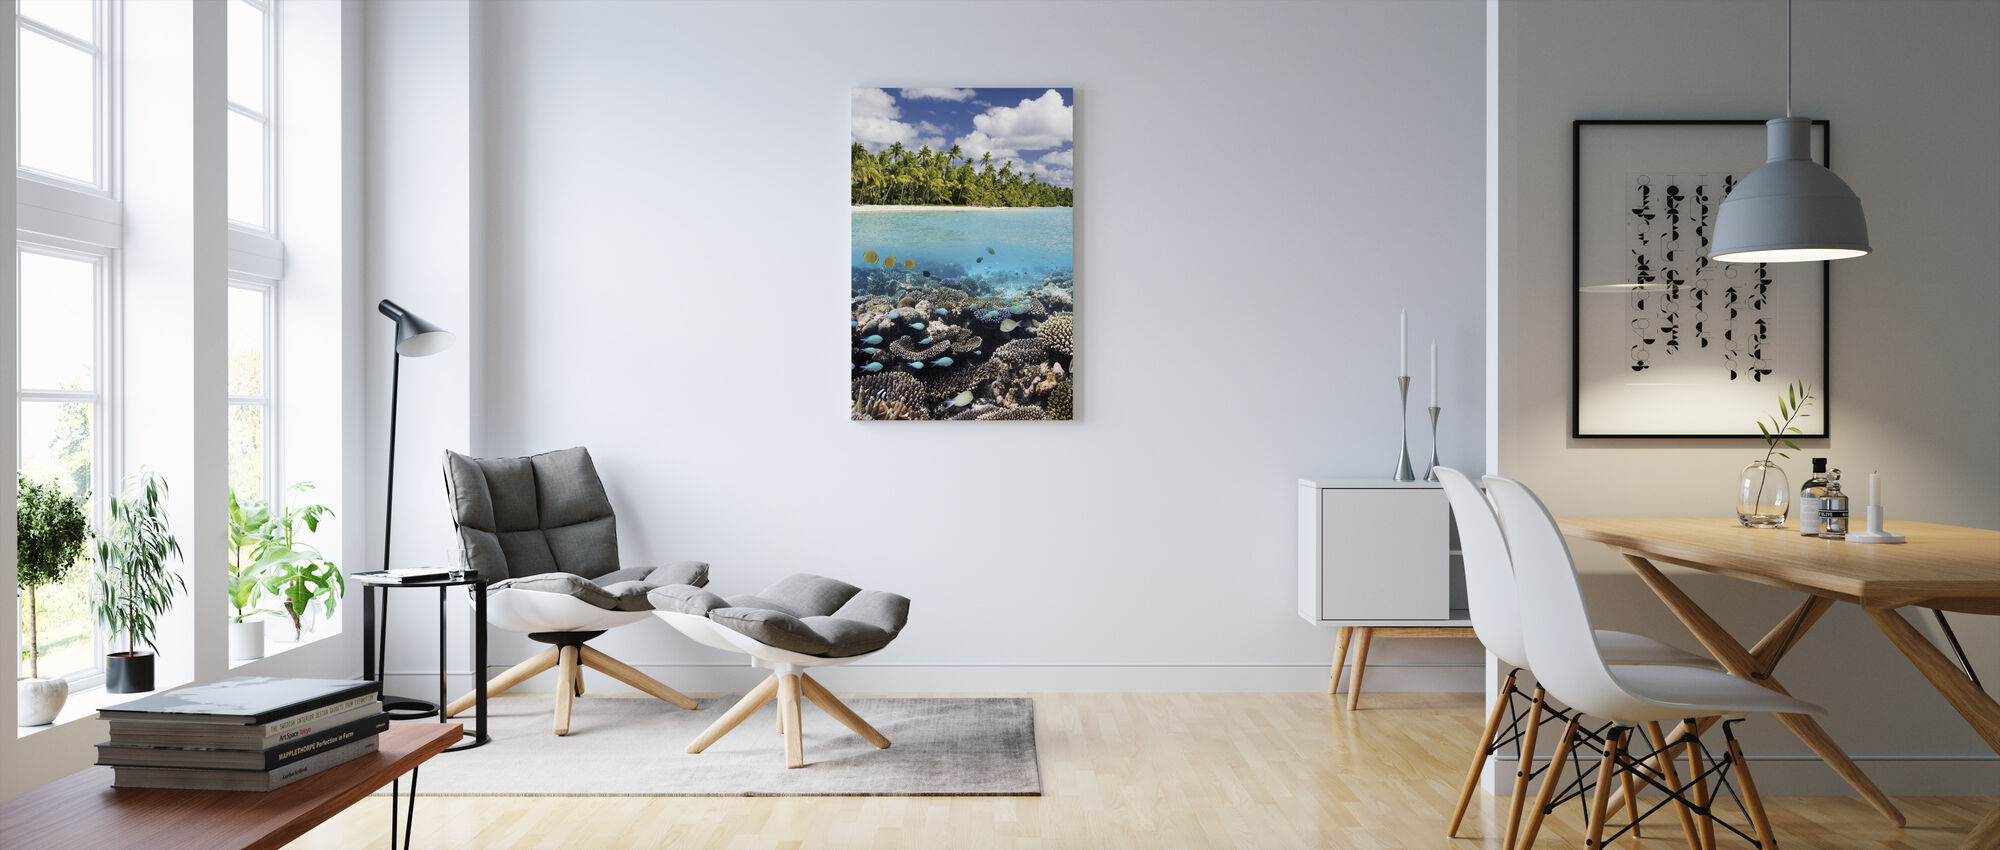 Under and above Water - Canvas print - Living Room